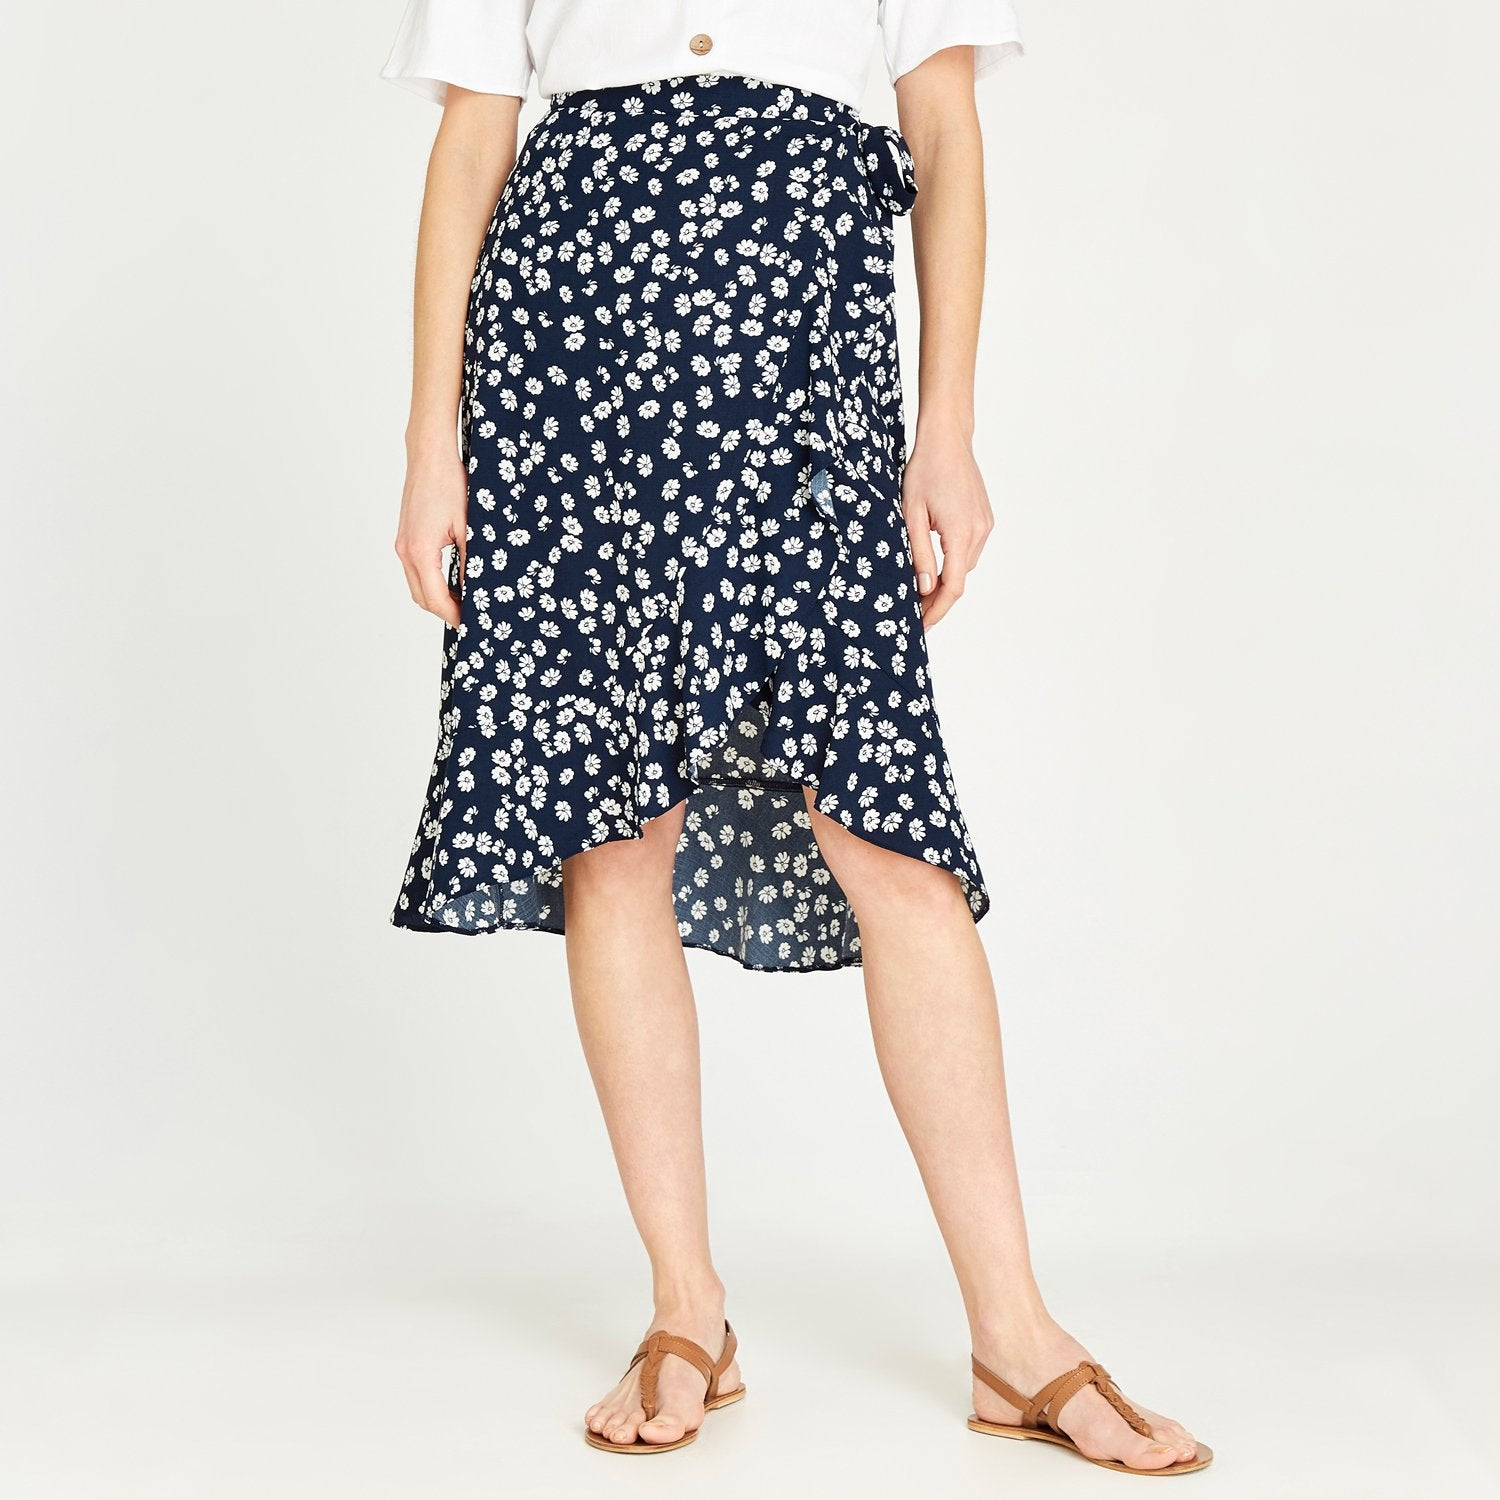 Apricot navy floral skirt 480612